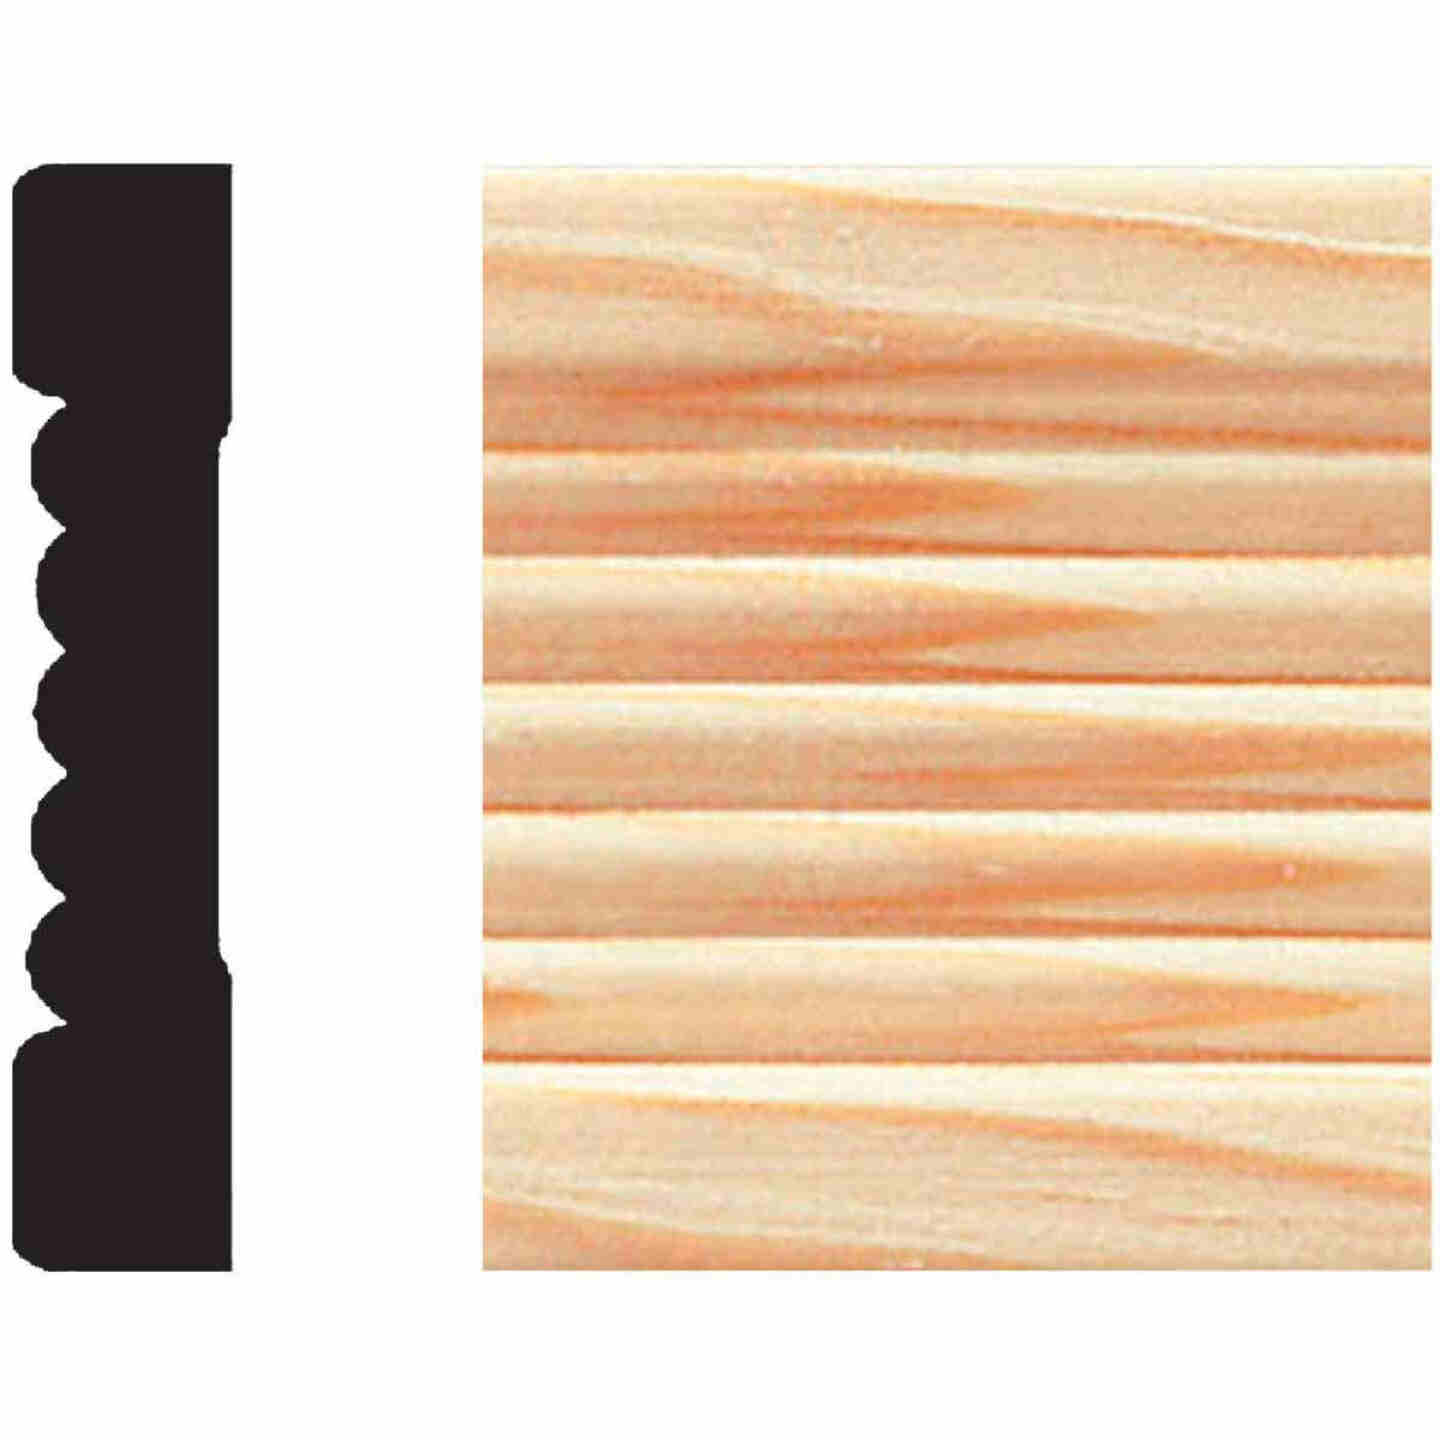 House of Fara 7/16 In. W. x 2-1/4 In. H. x 7 Ft. L. Natural Pine Fluted Wood Casing Image 1